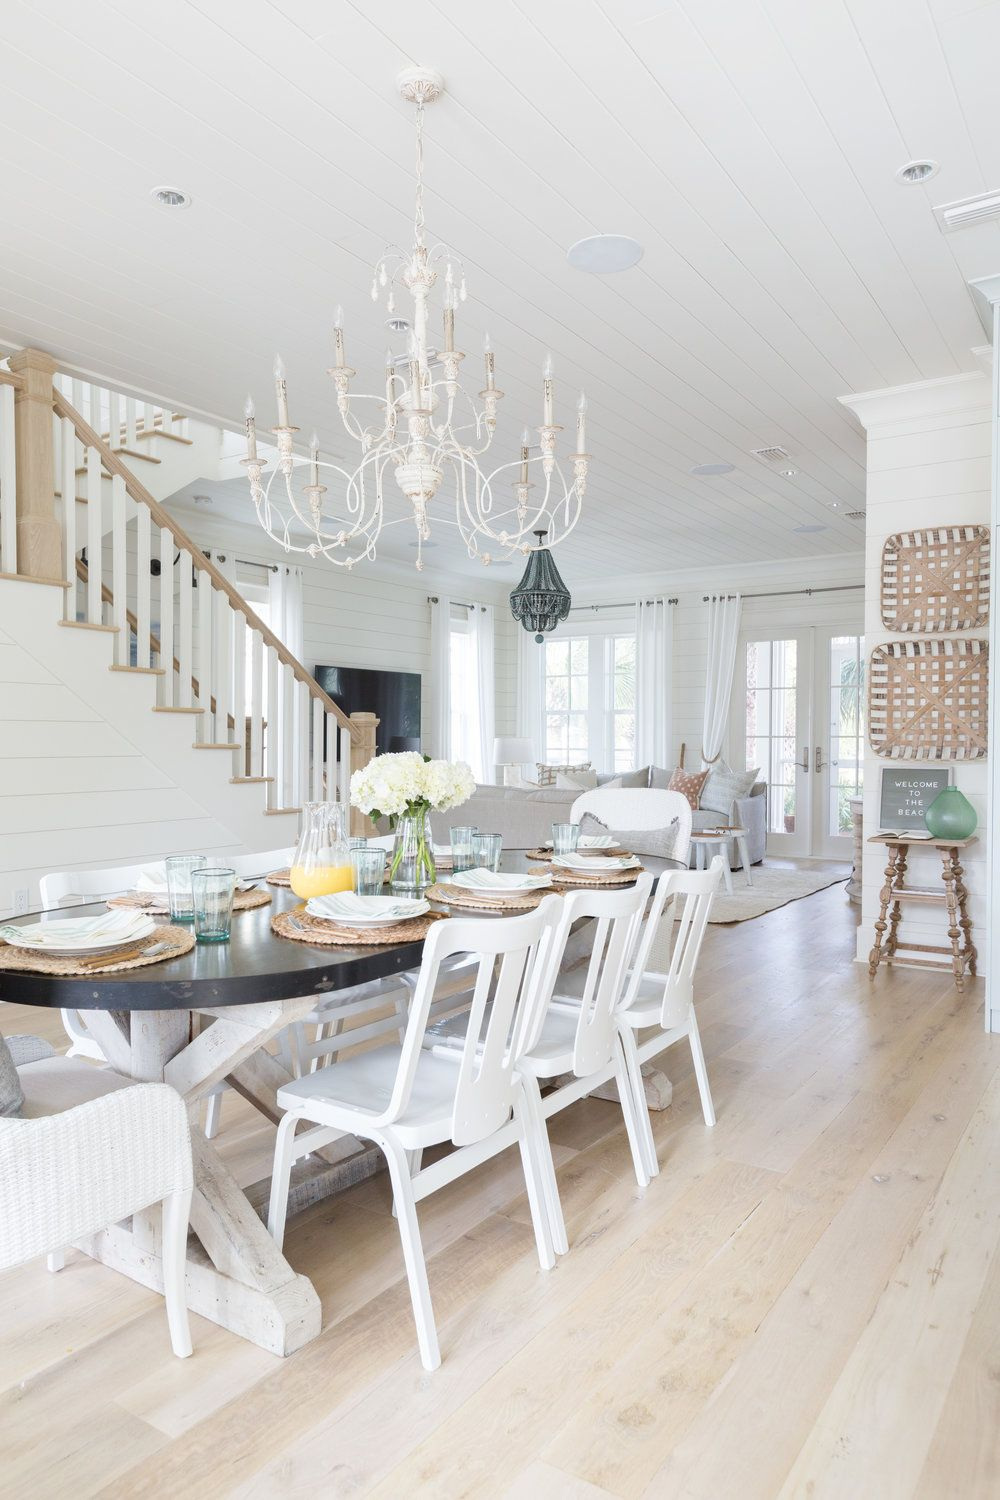 beach houses Dream Beach Houses To Drive Your Decor Inspiration Beach House Dining Rooms Youll Want ASAP 1